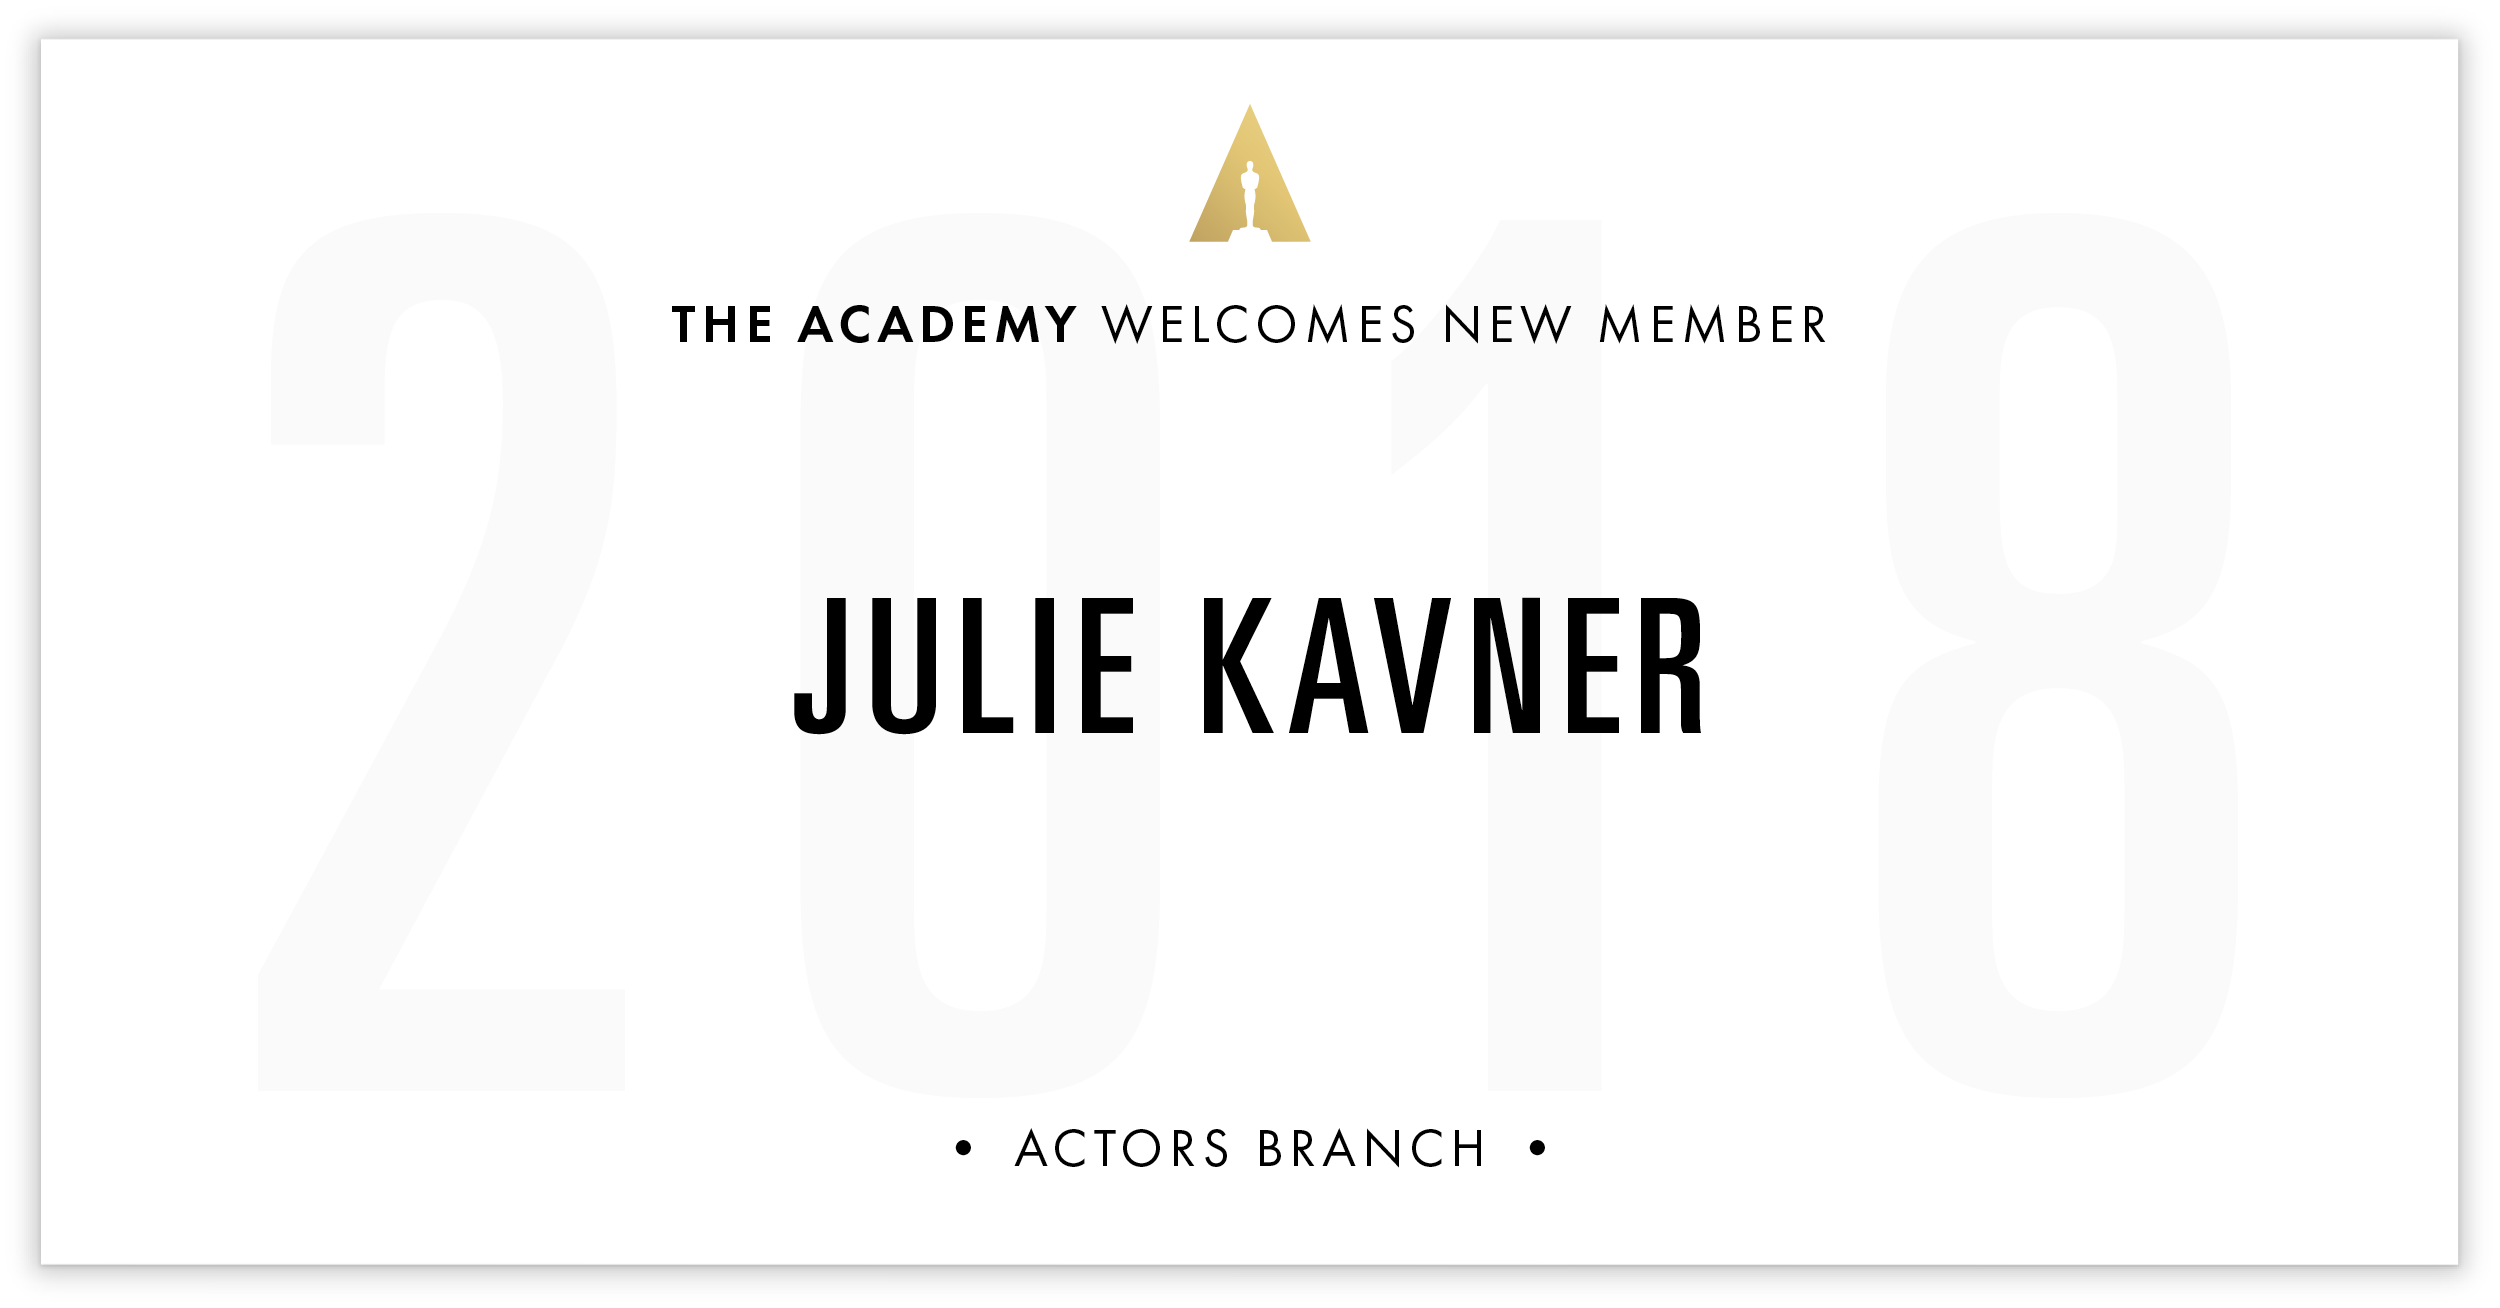 Julie Kavner is invited!